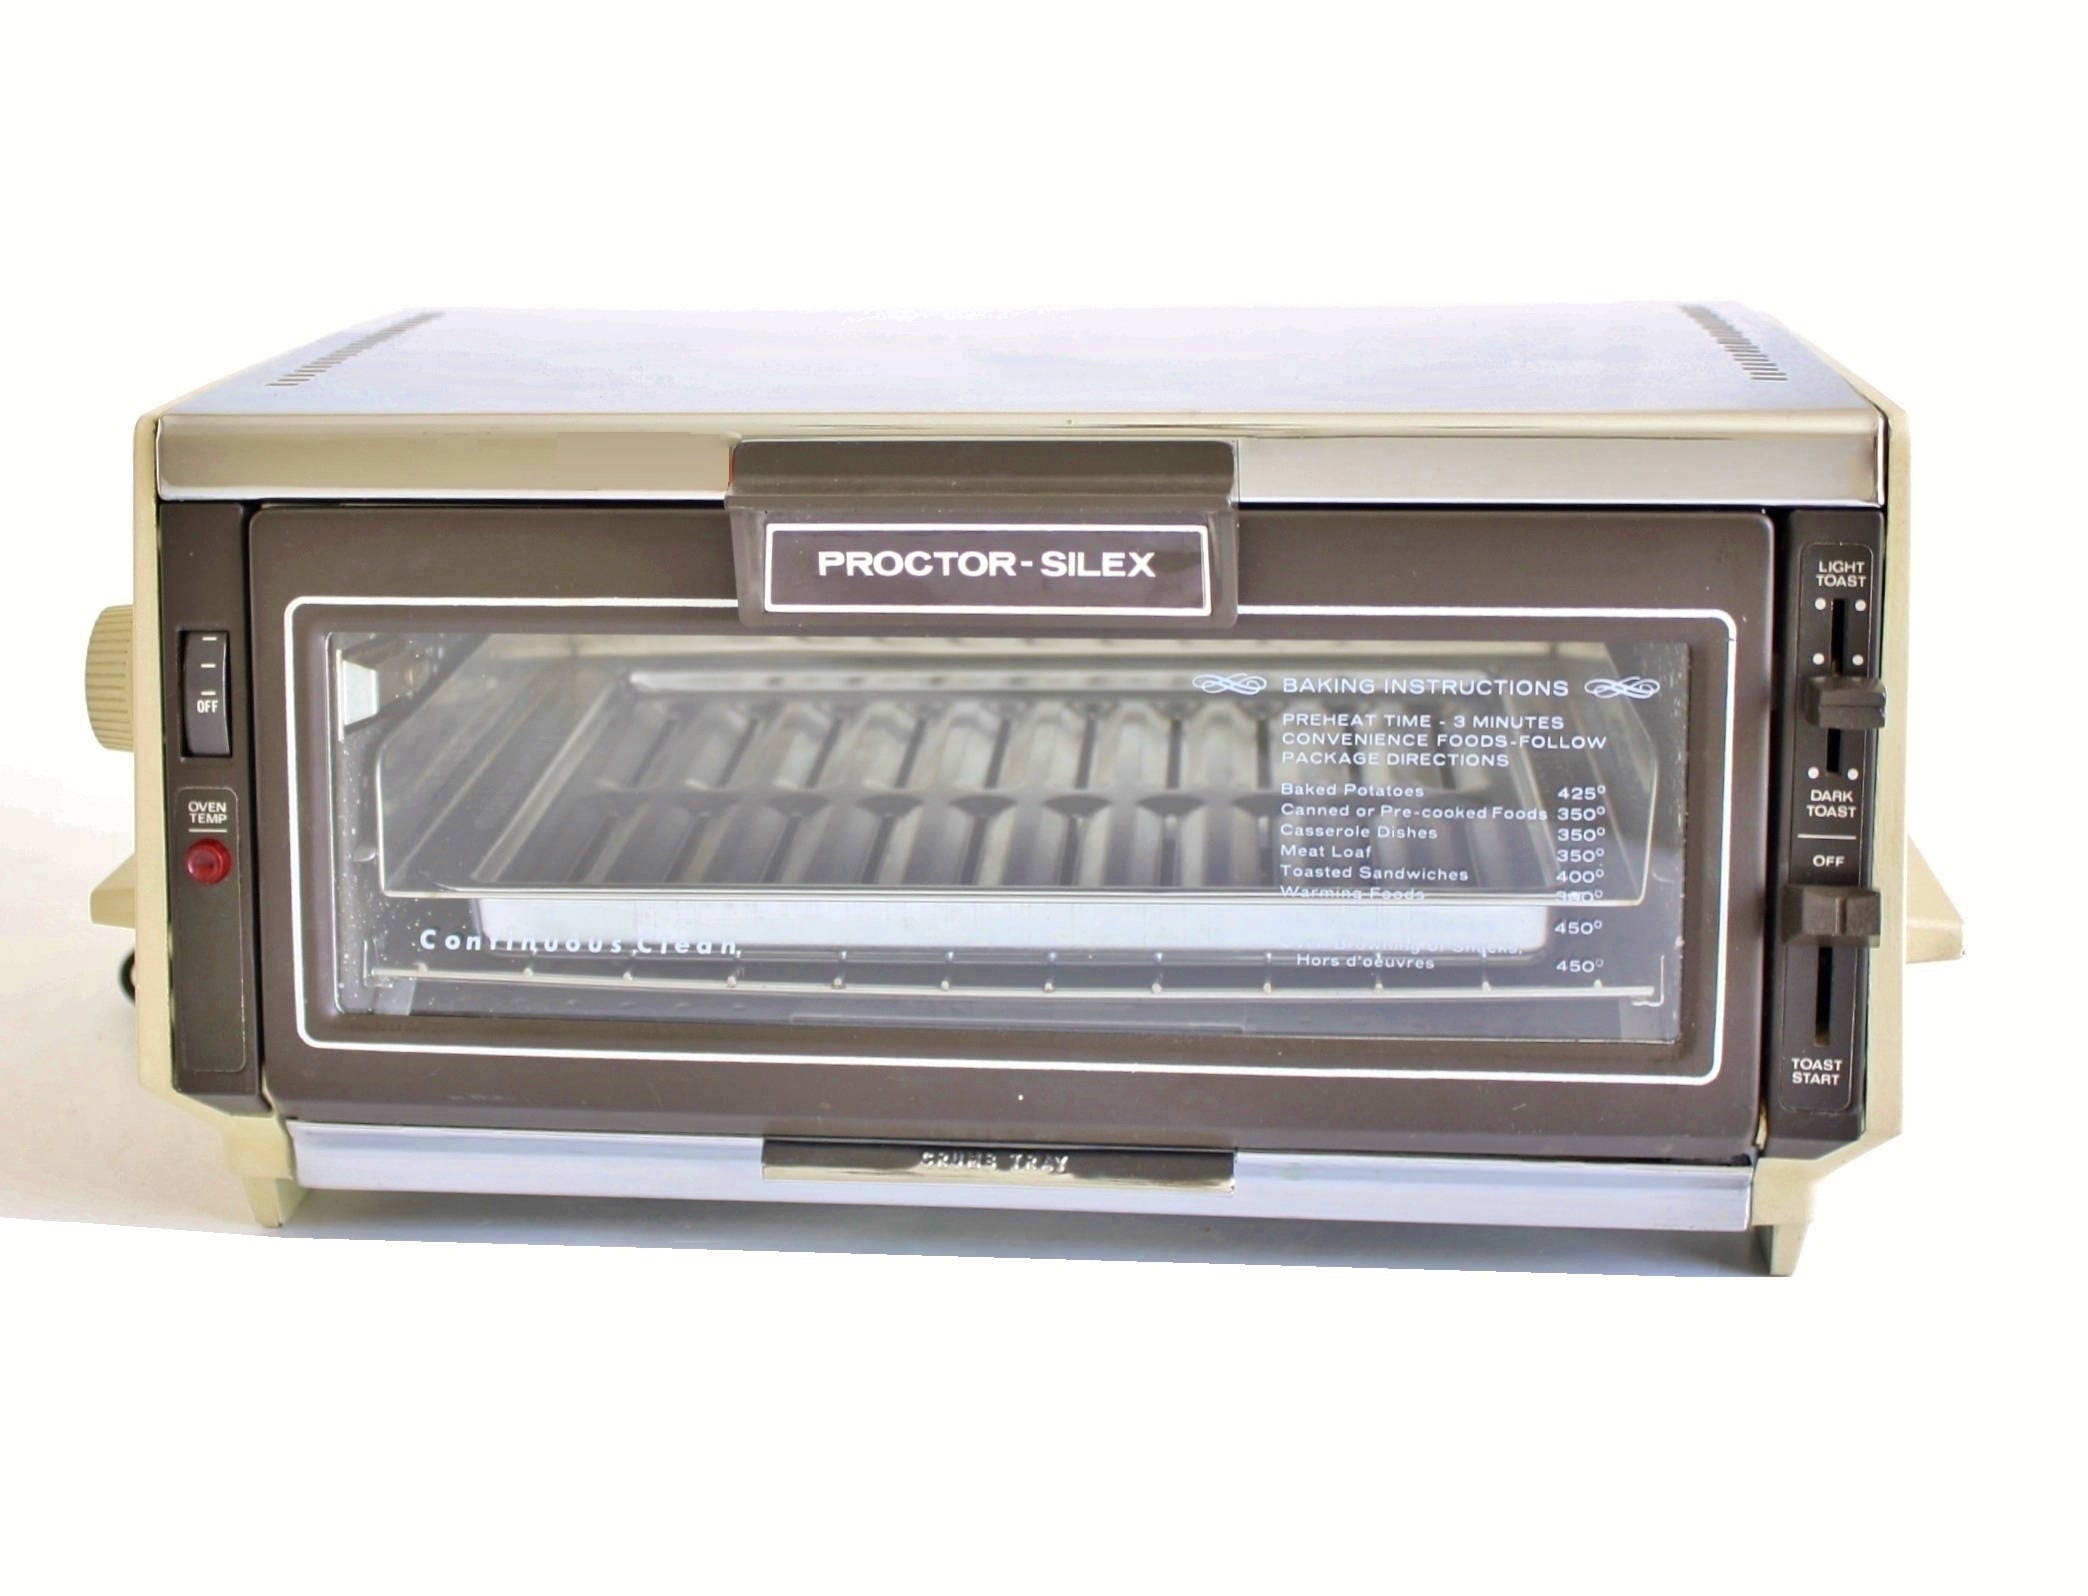 Proctor Silex Toaster Oven 0221AL Made in USA Small Appliance